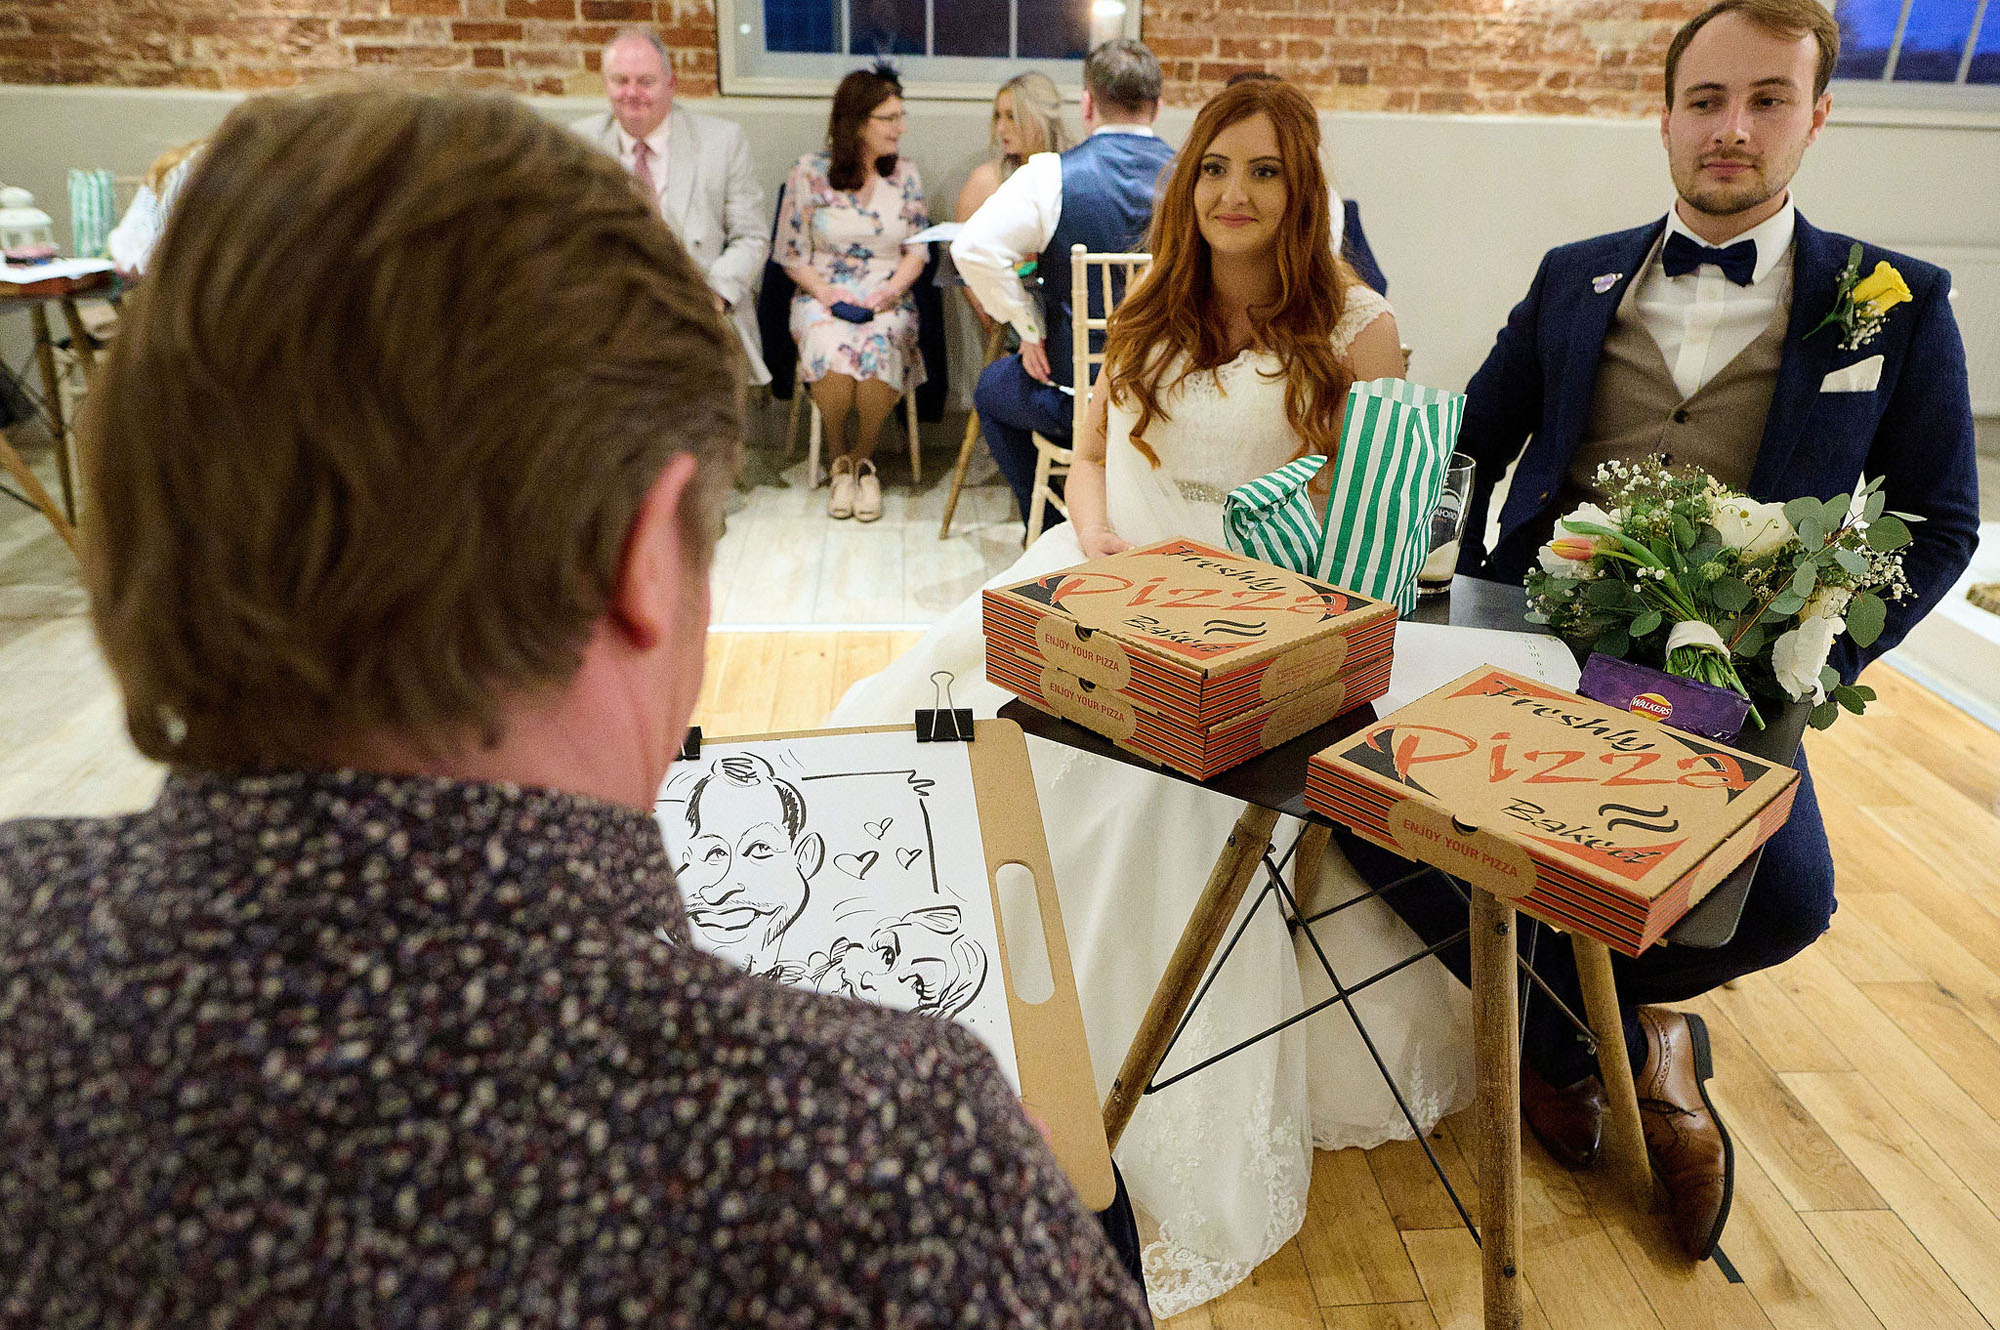 Joe and Jess's elegant rustic wedding at Sopley Mill. We love their bright yellow florals, the rustic ambience of the mill and the photos by Libra Photographic